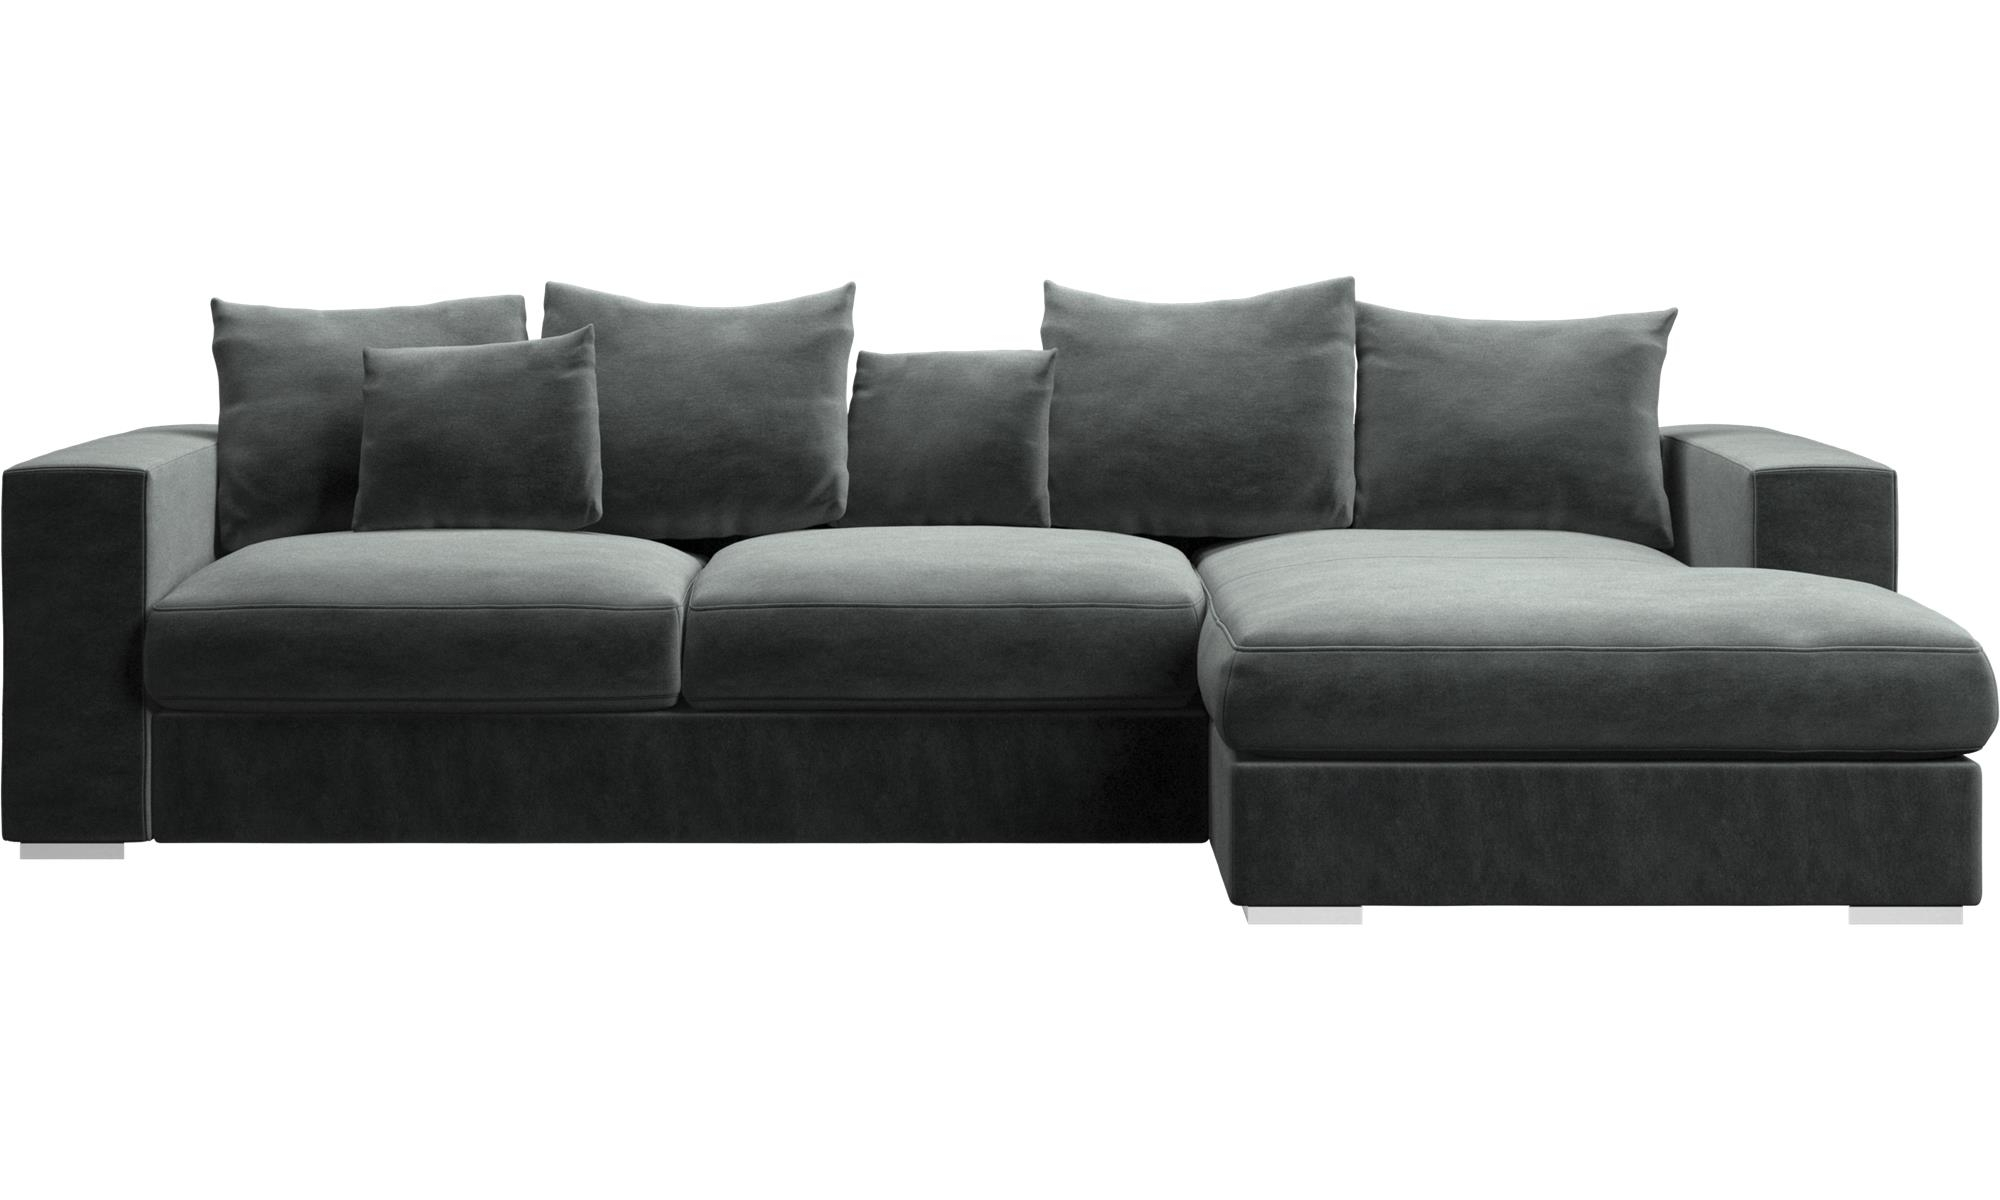 Fashionable Chaise Lounge Sofas – Cenova Sofa With Resting Unit – Boconcept Throughout Chaise Lounge Benchs (View 8 of 15)